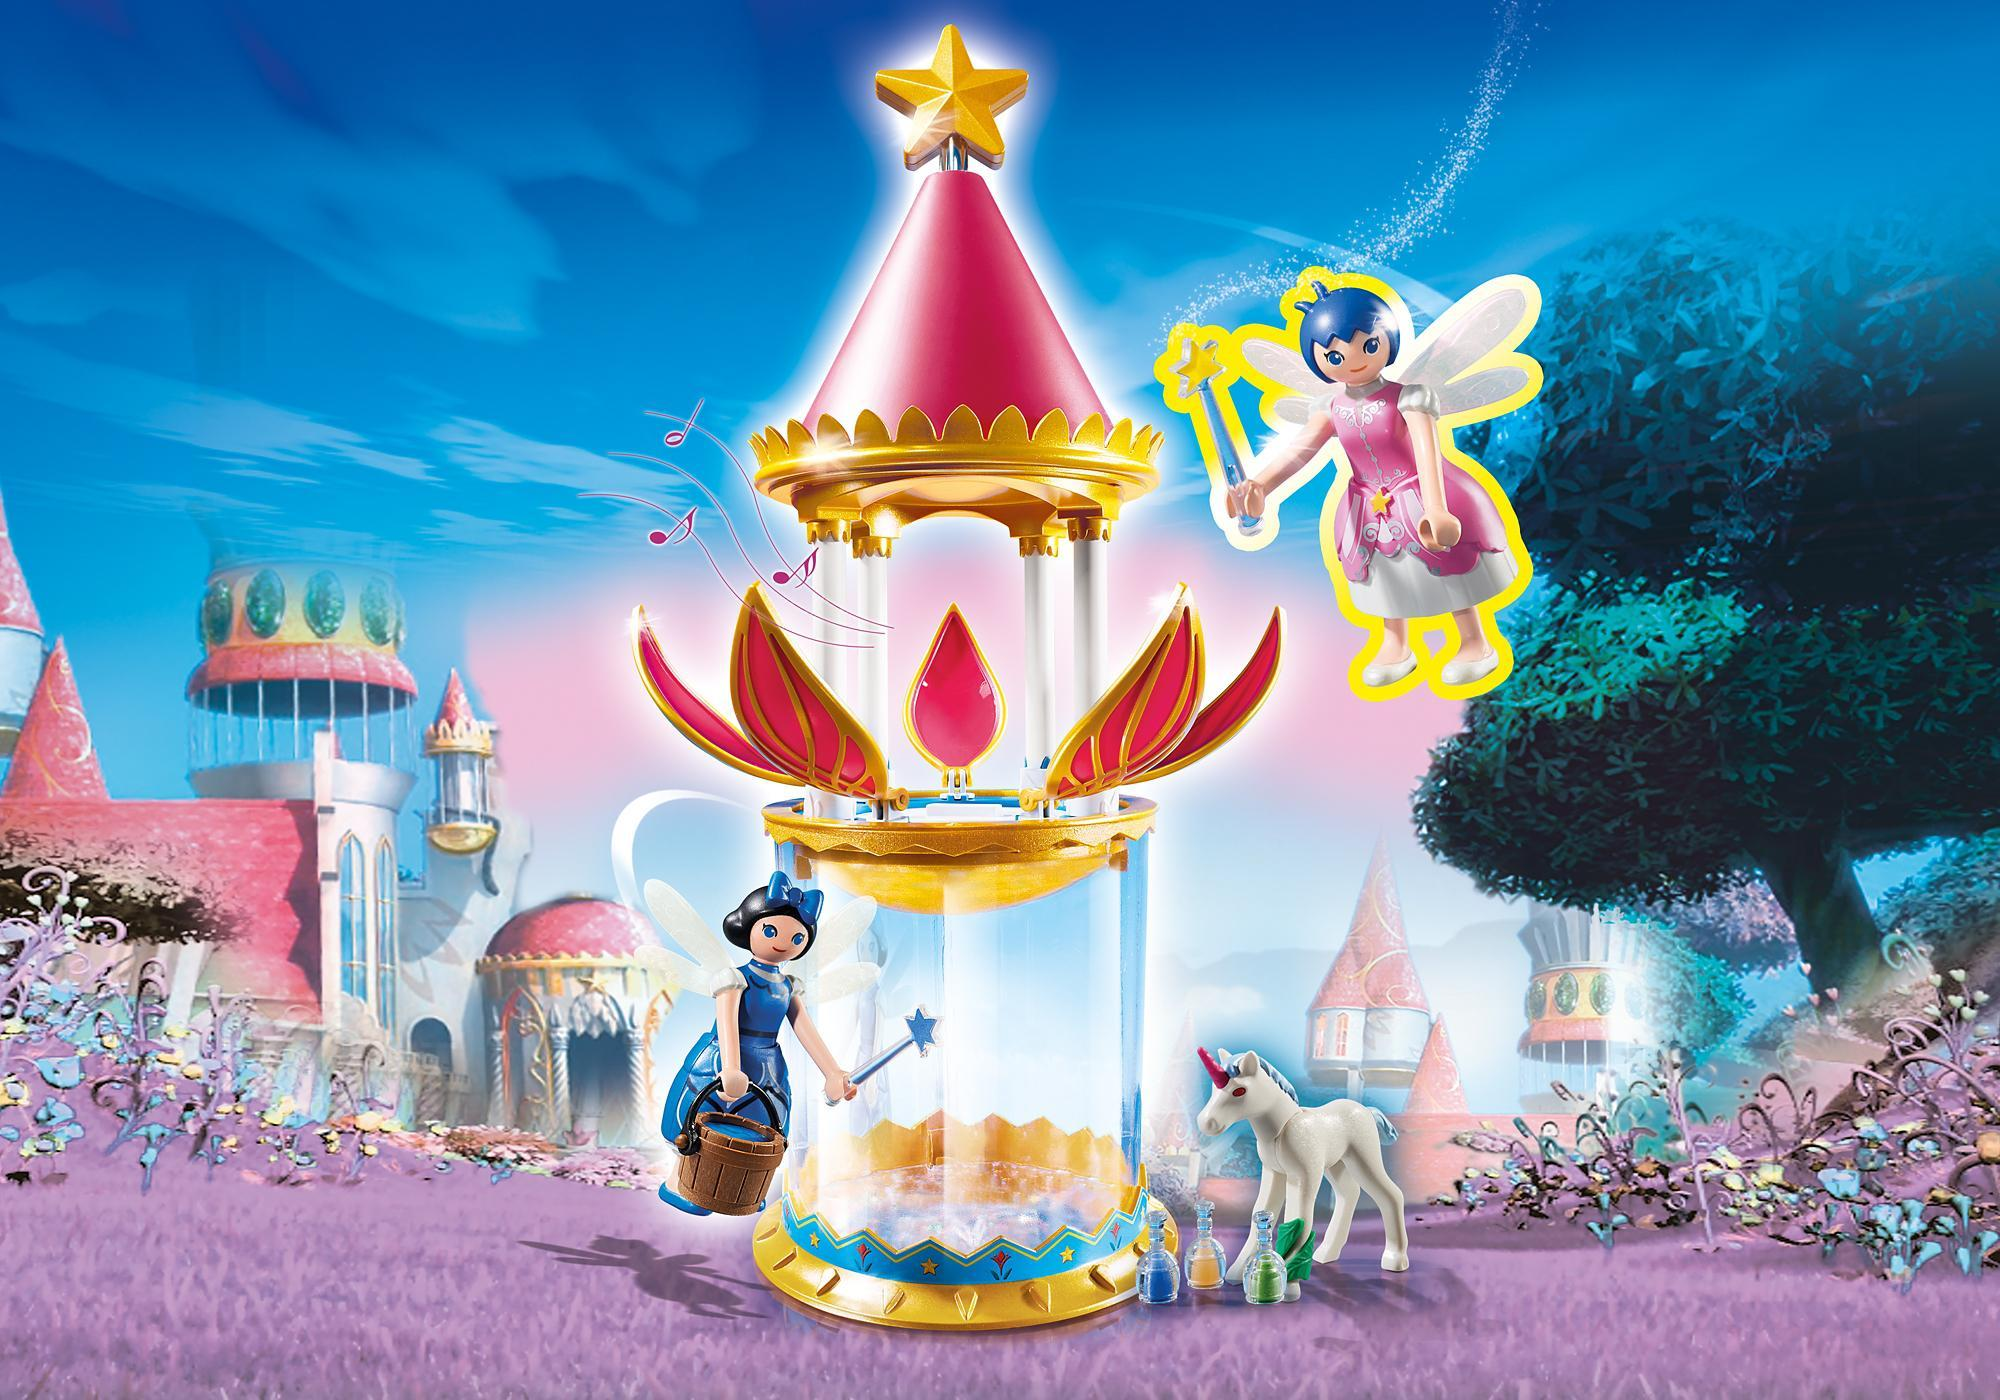 http://media.playmobil.com/i/playmobil/6688_product_detail/Musical Flower Tower with Twinkle